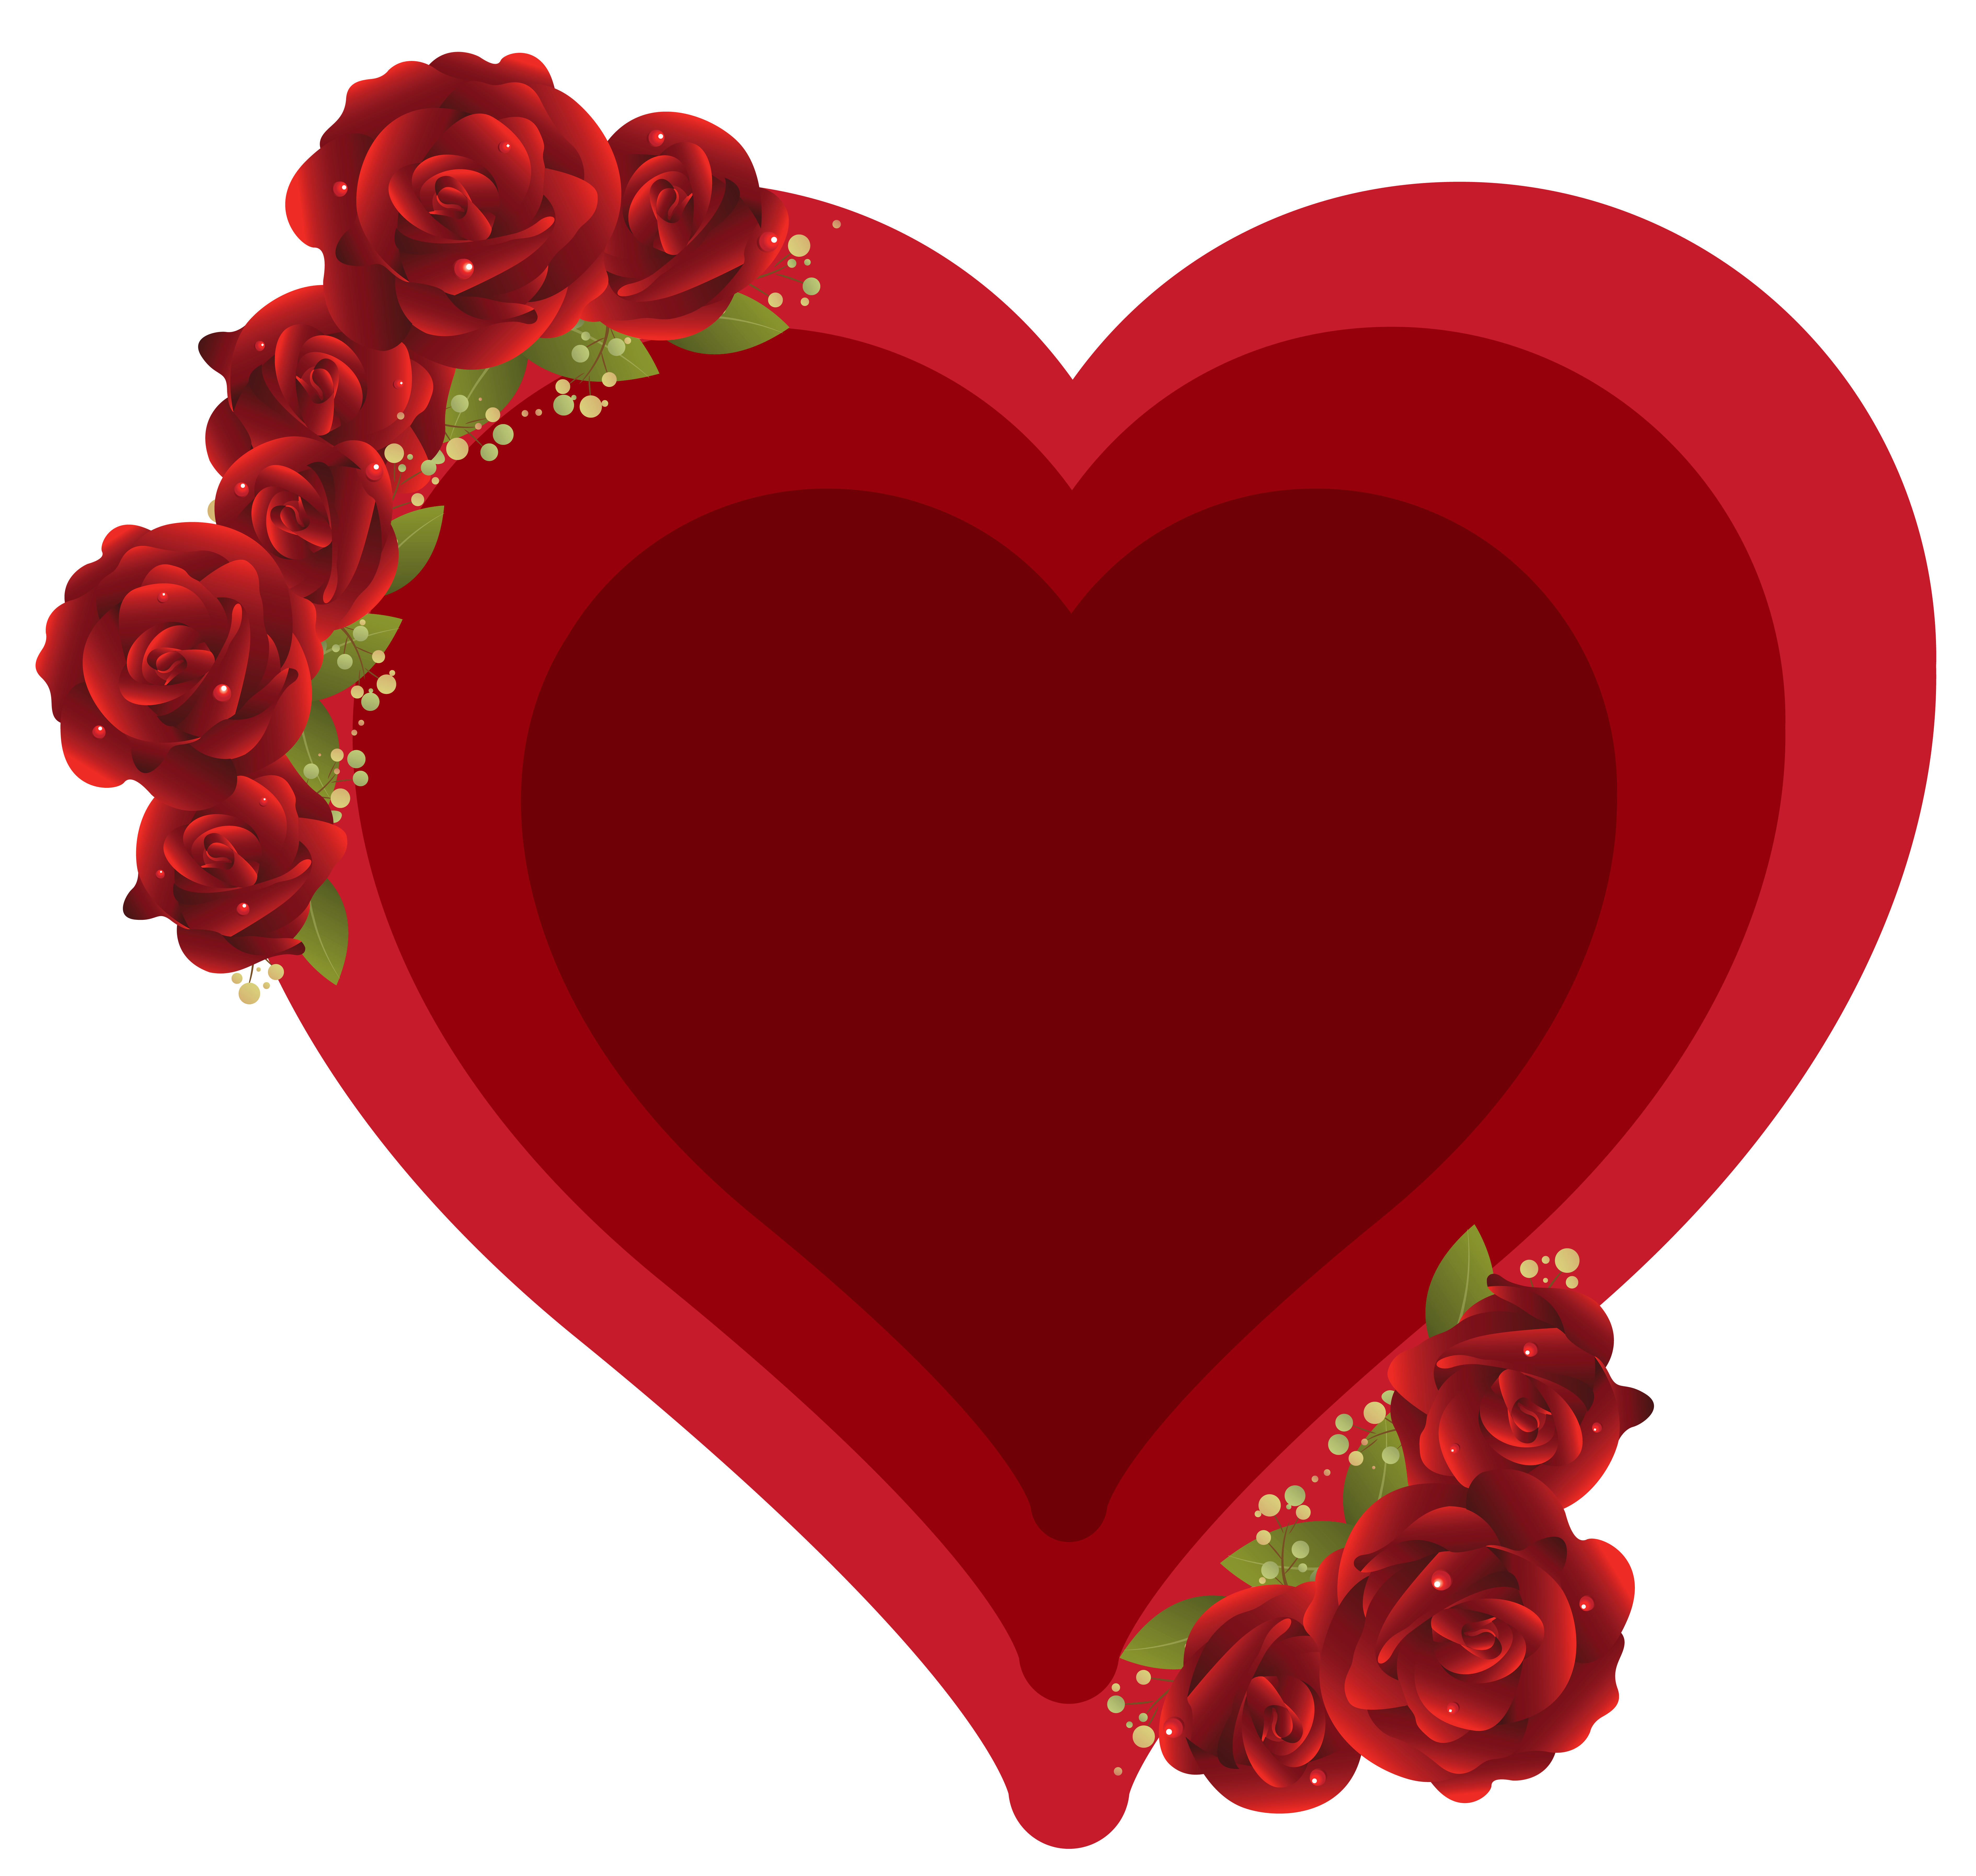 Hearts clipart rose. Deco heart with roses